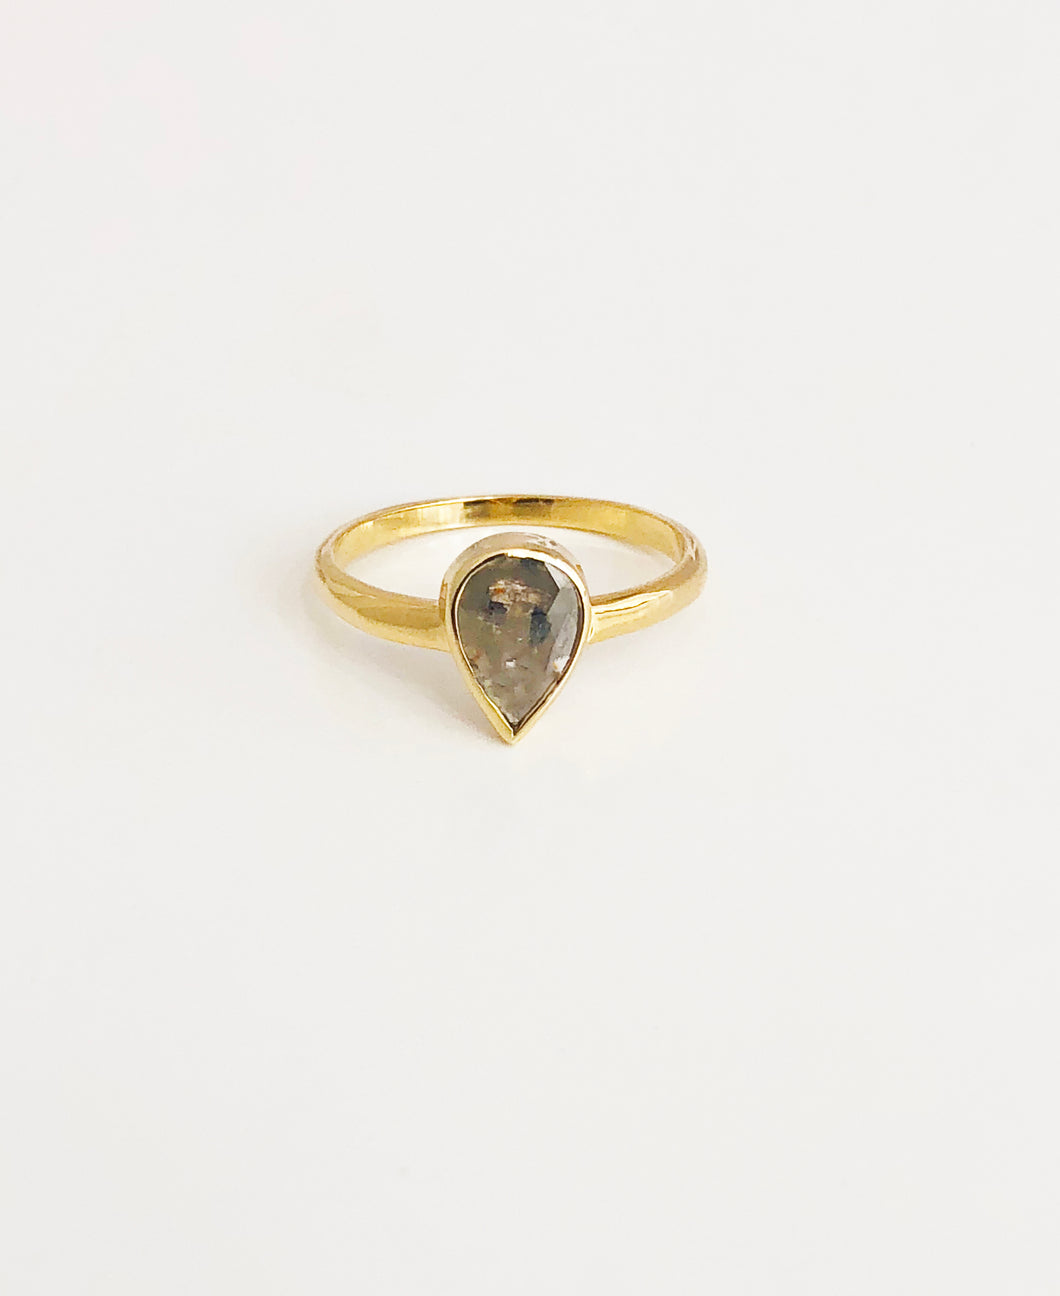 14K Gold Diamond Ring - Sufi Design